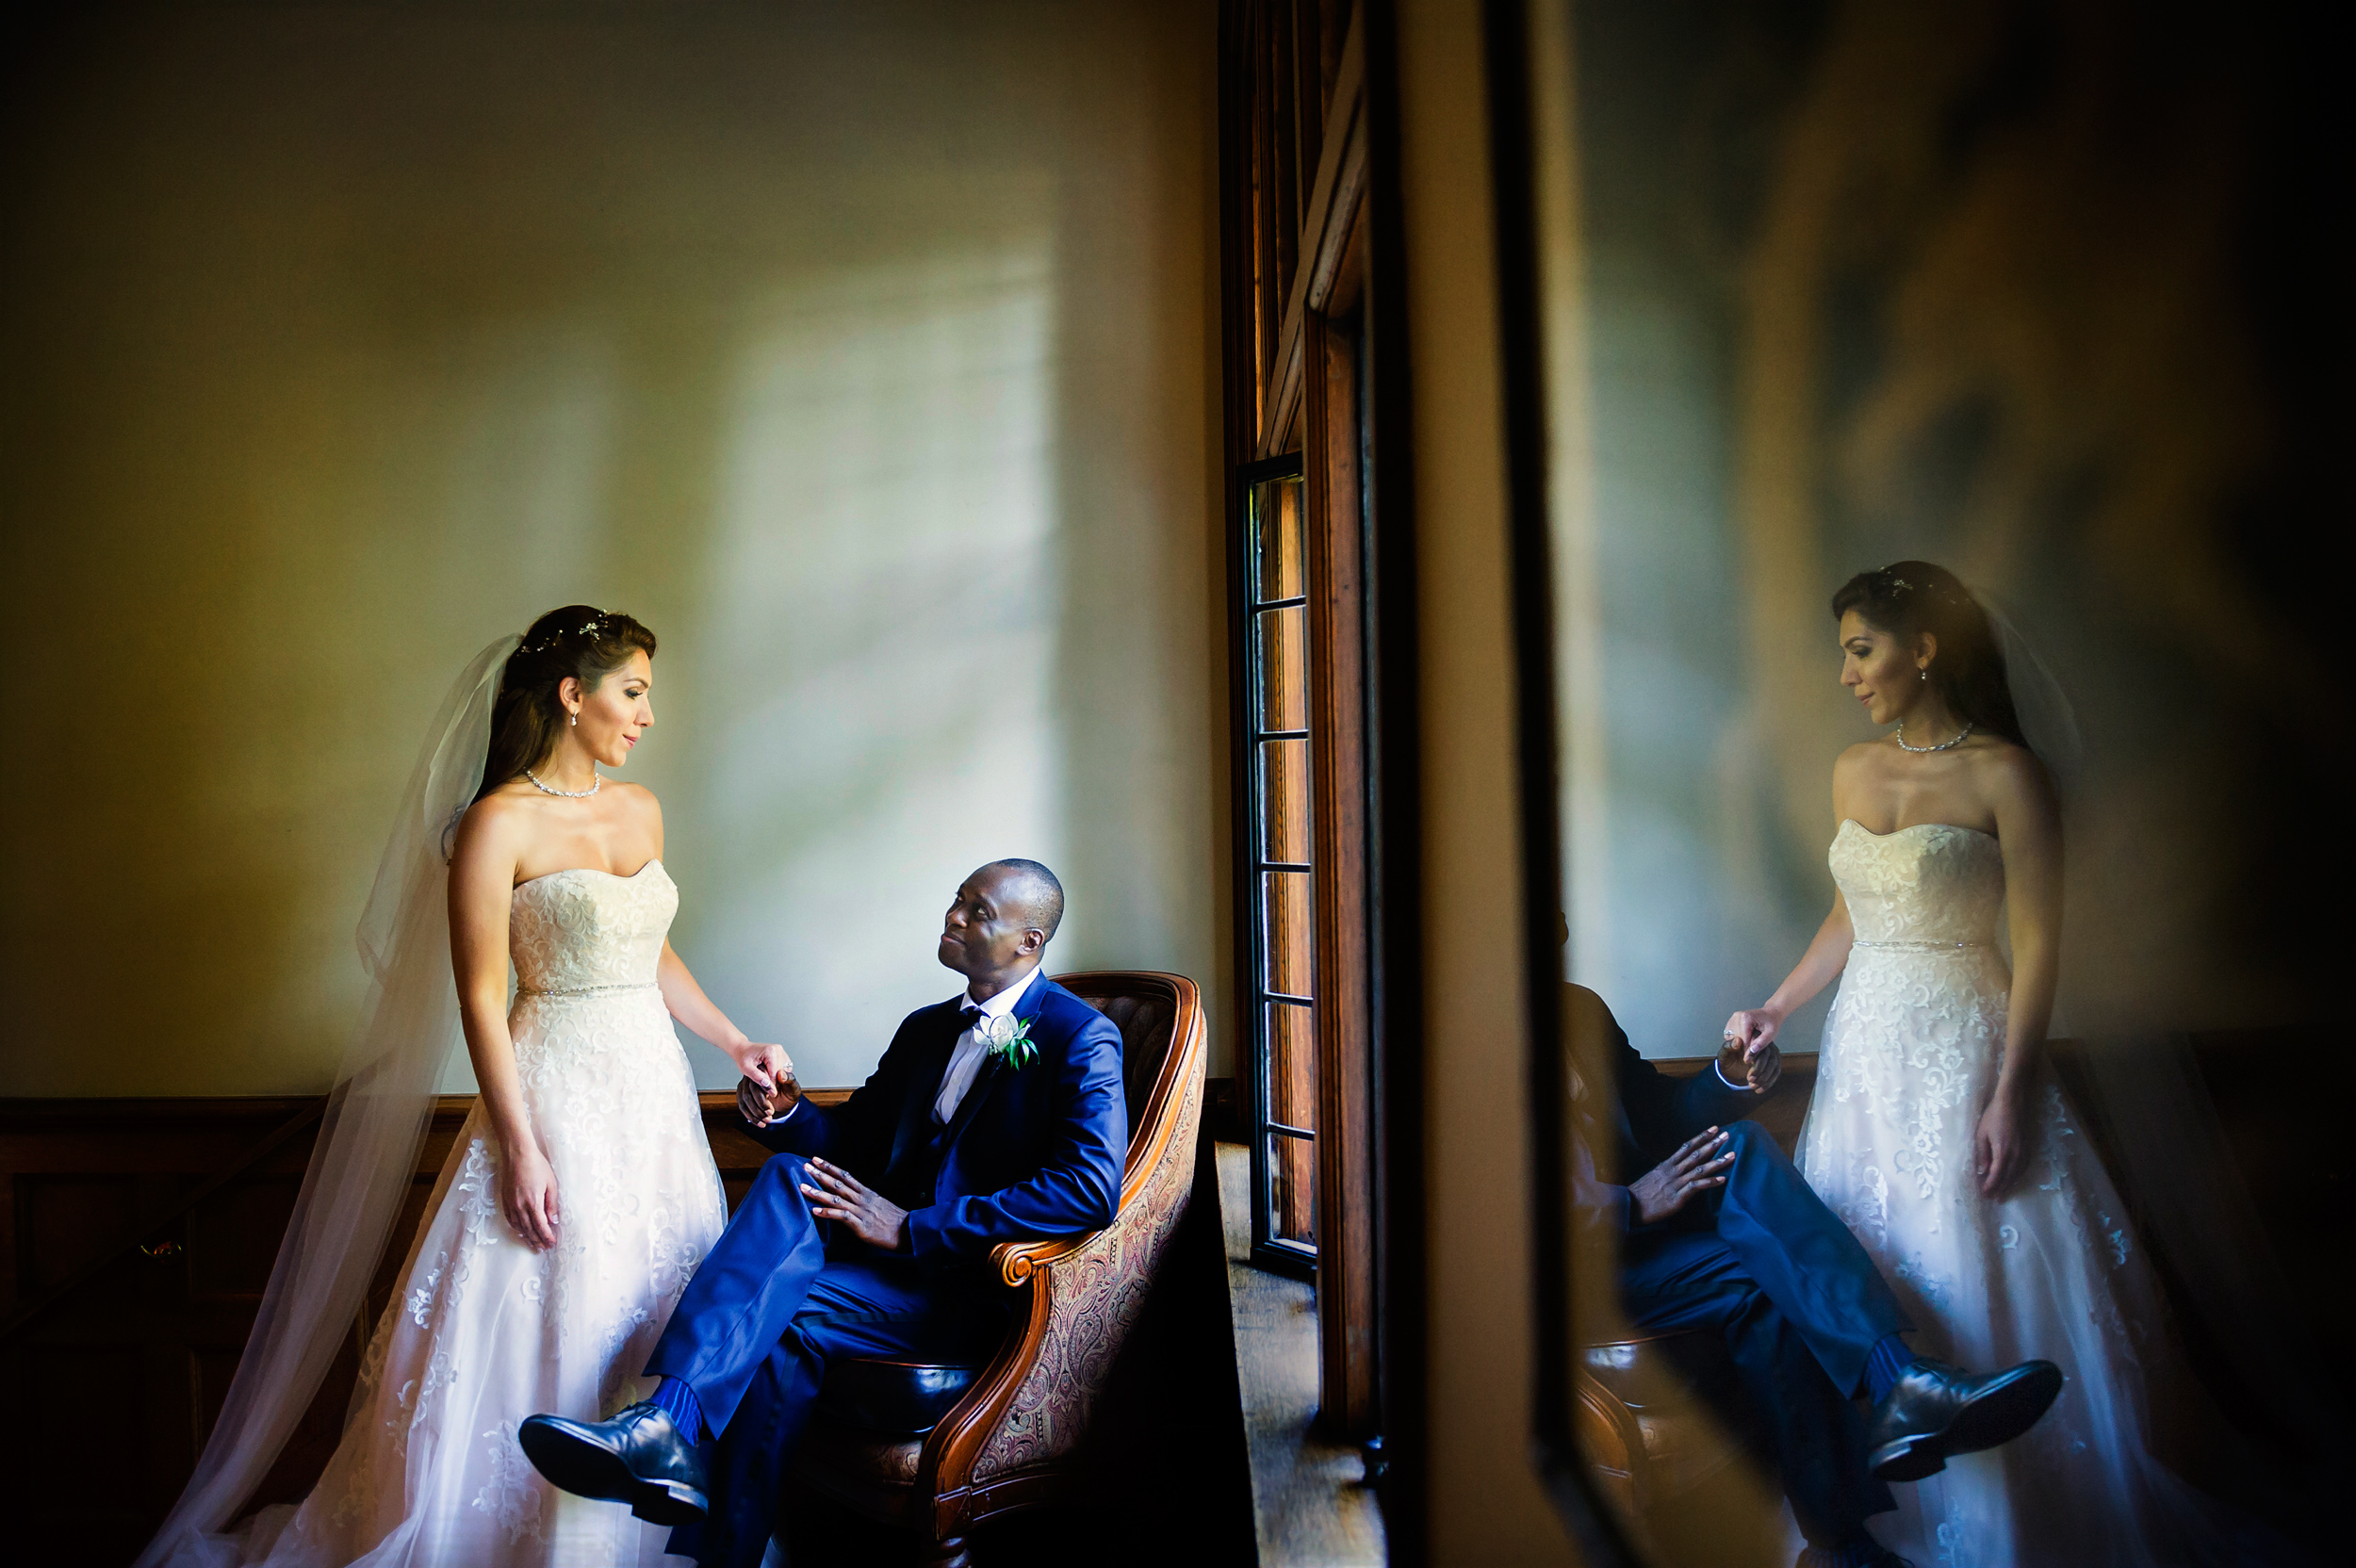 Reflection photo of bride and groom in mirror - photo by Jozef Povazan Photography